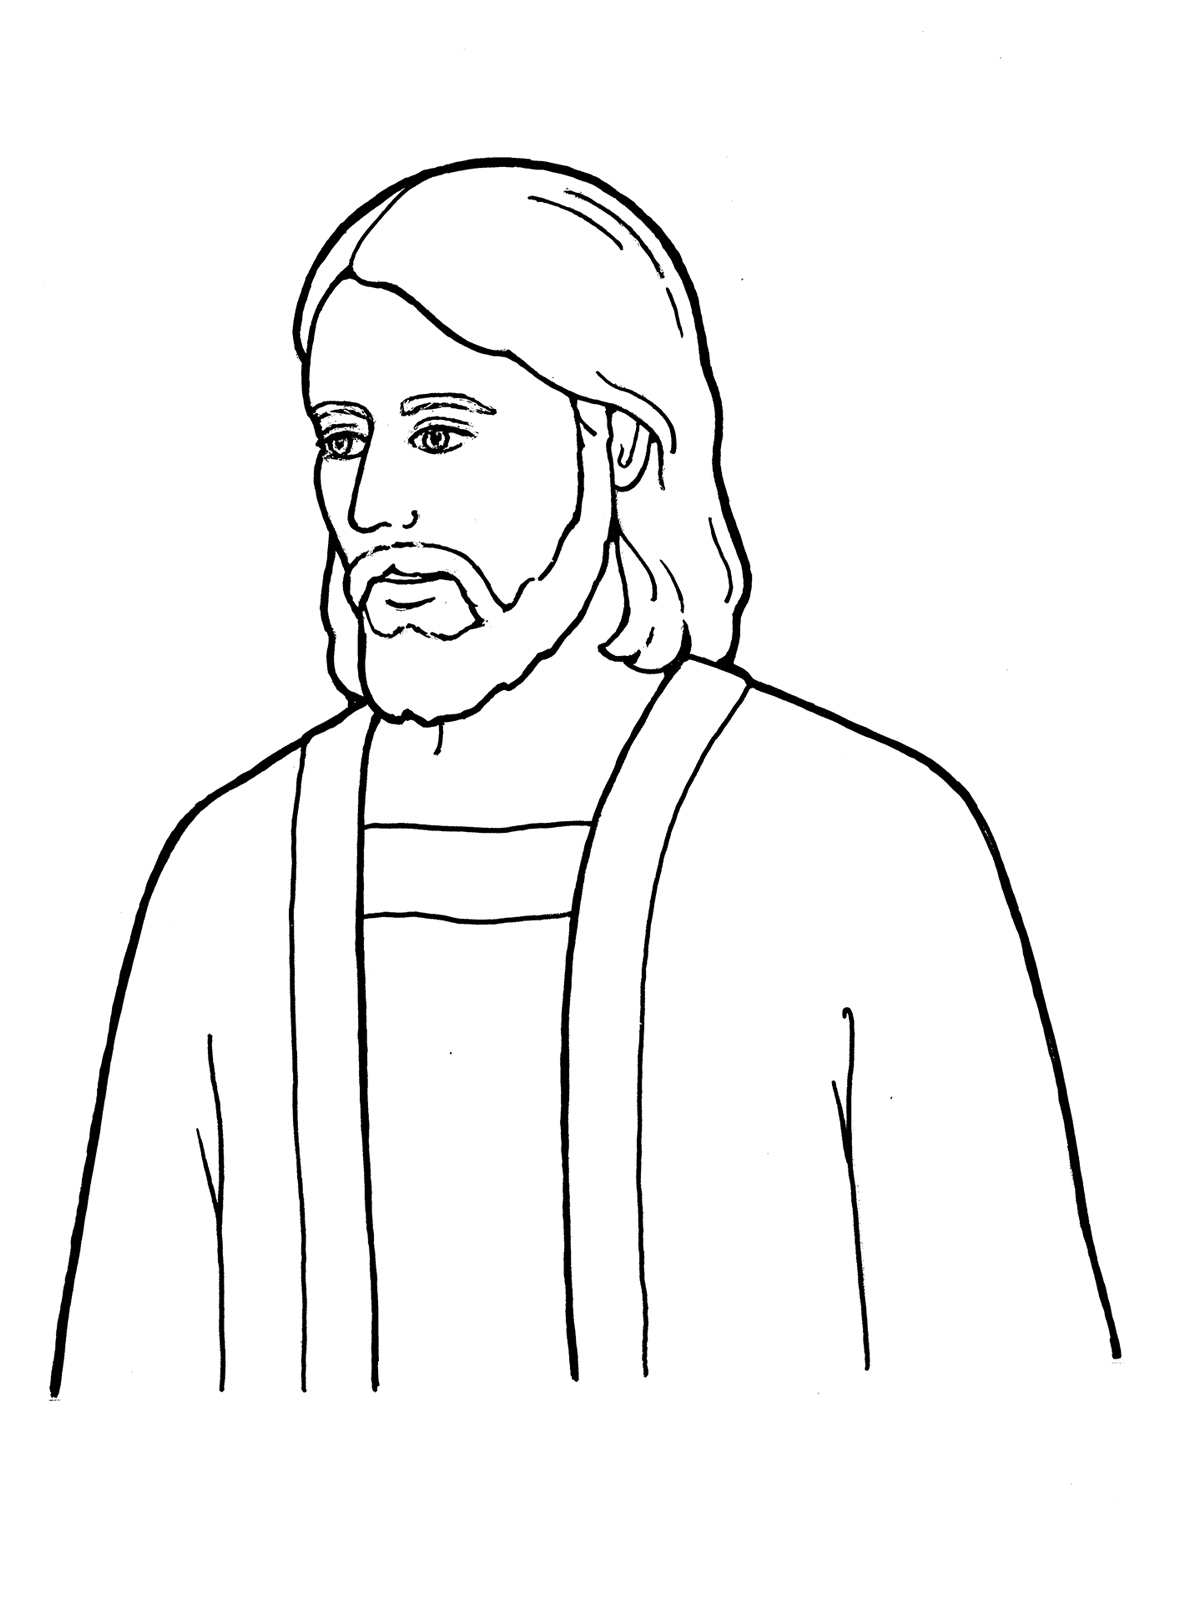 Coloring pages jesus ~ Christ